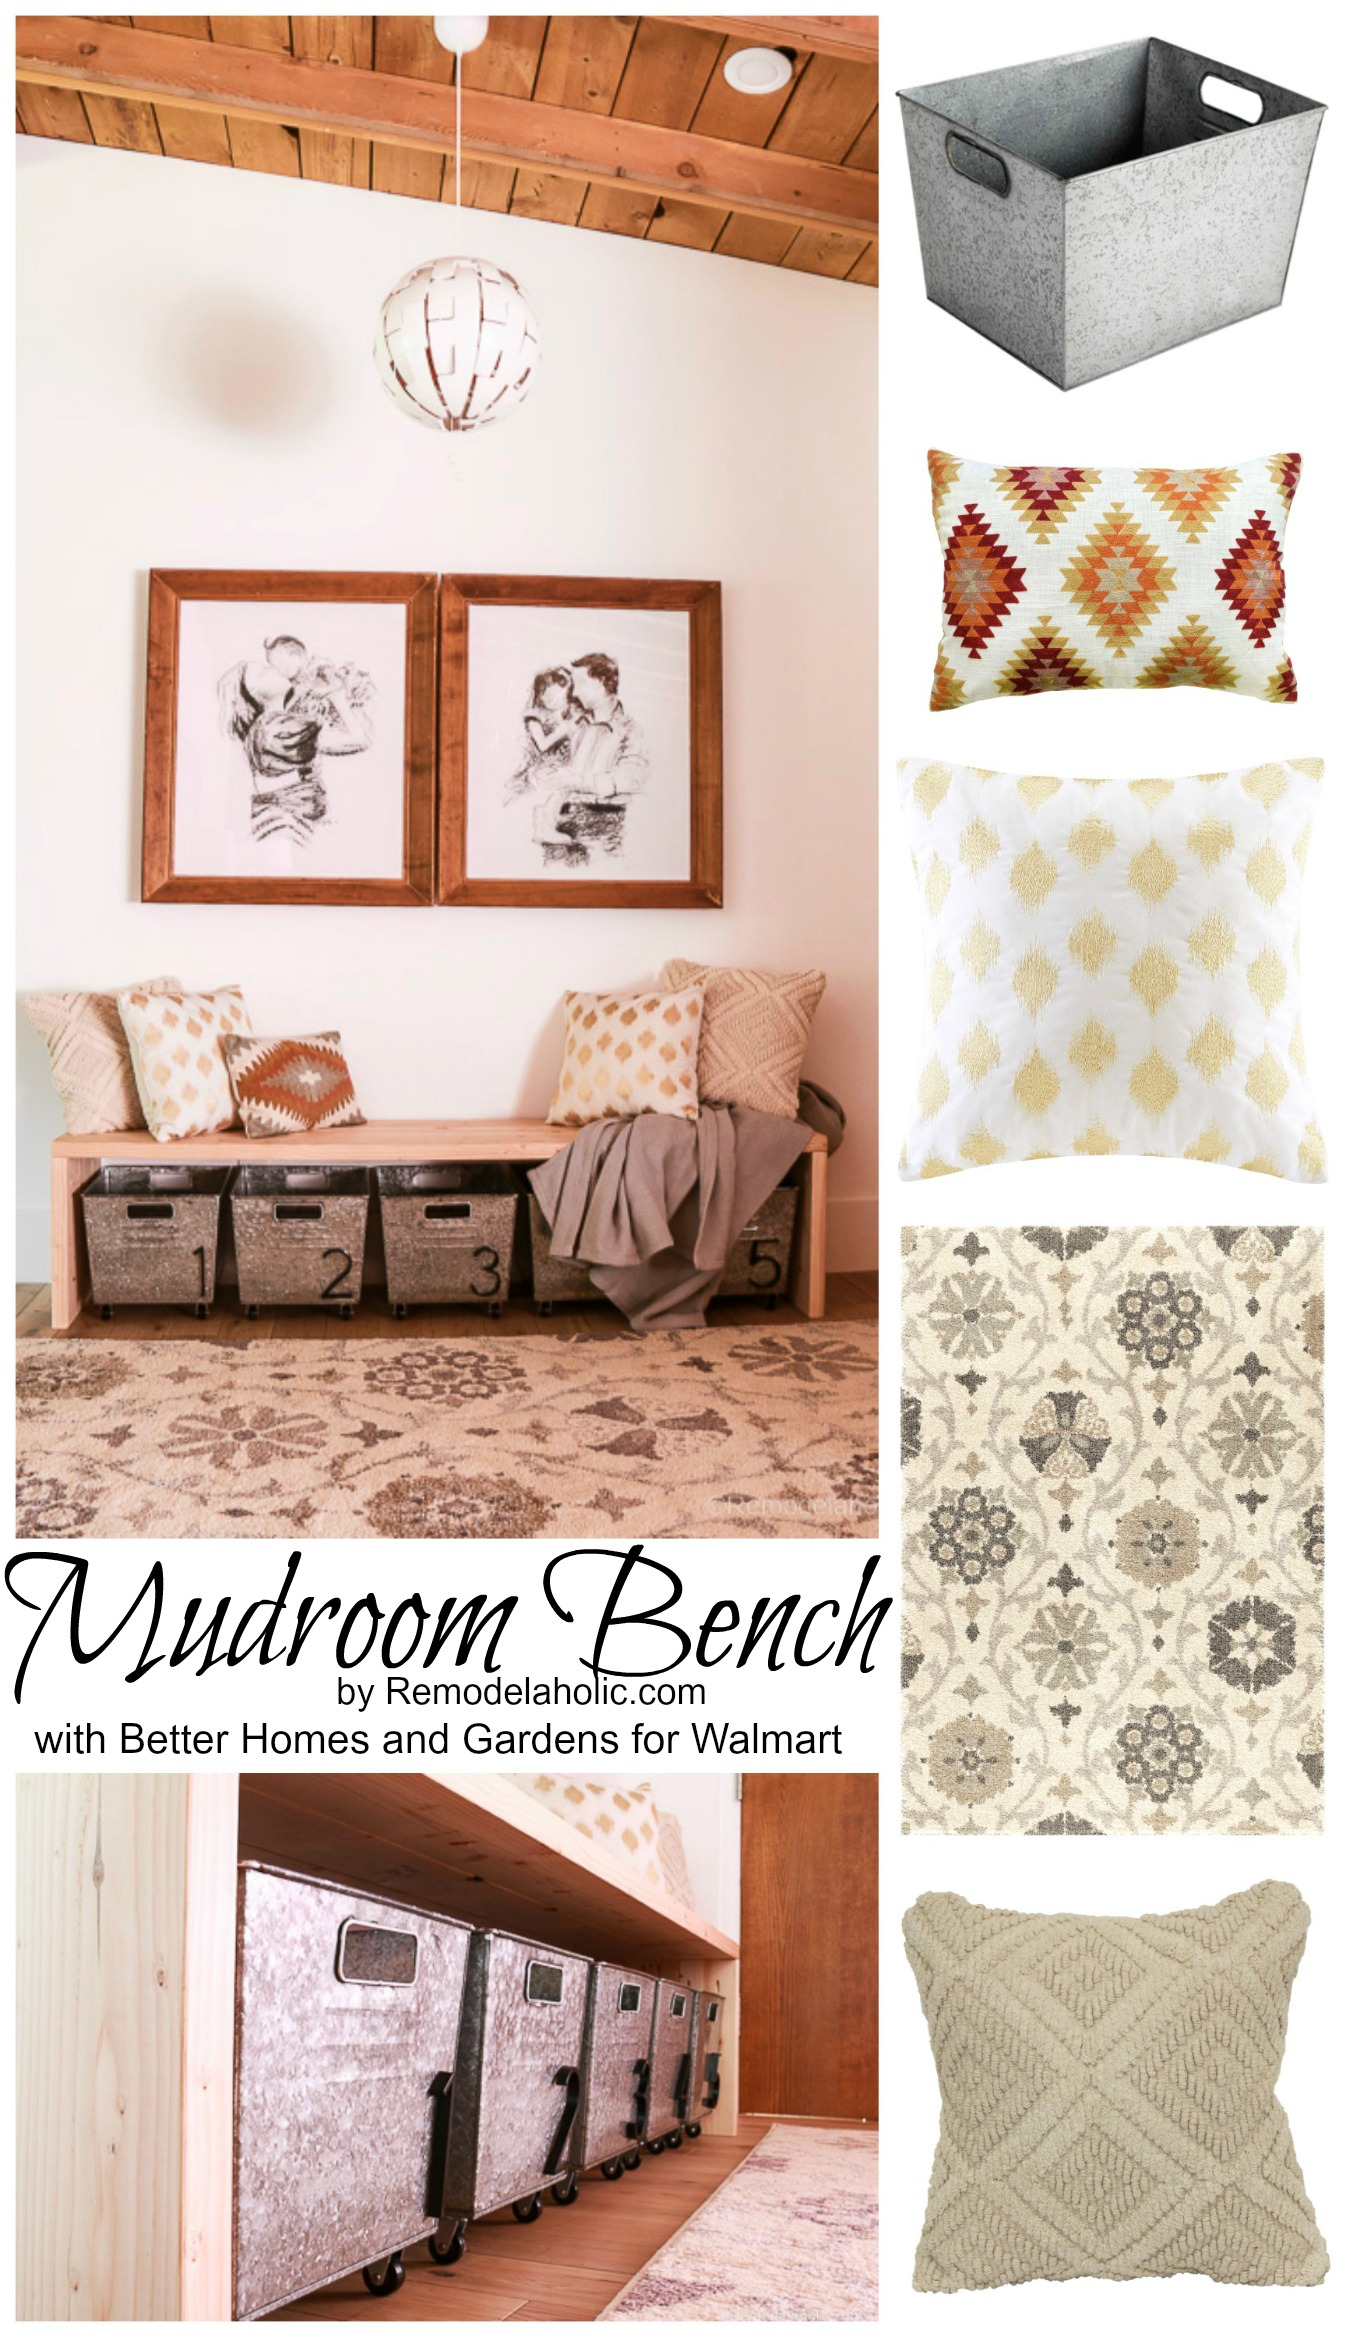 Great DIY Mudroom Area For Small Entry With Better Homes And Gardens At  Walmart Remodelaholic Remodelaholic New Mudroom Area Fetching And Blanket  Home ...